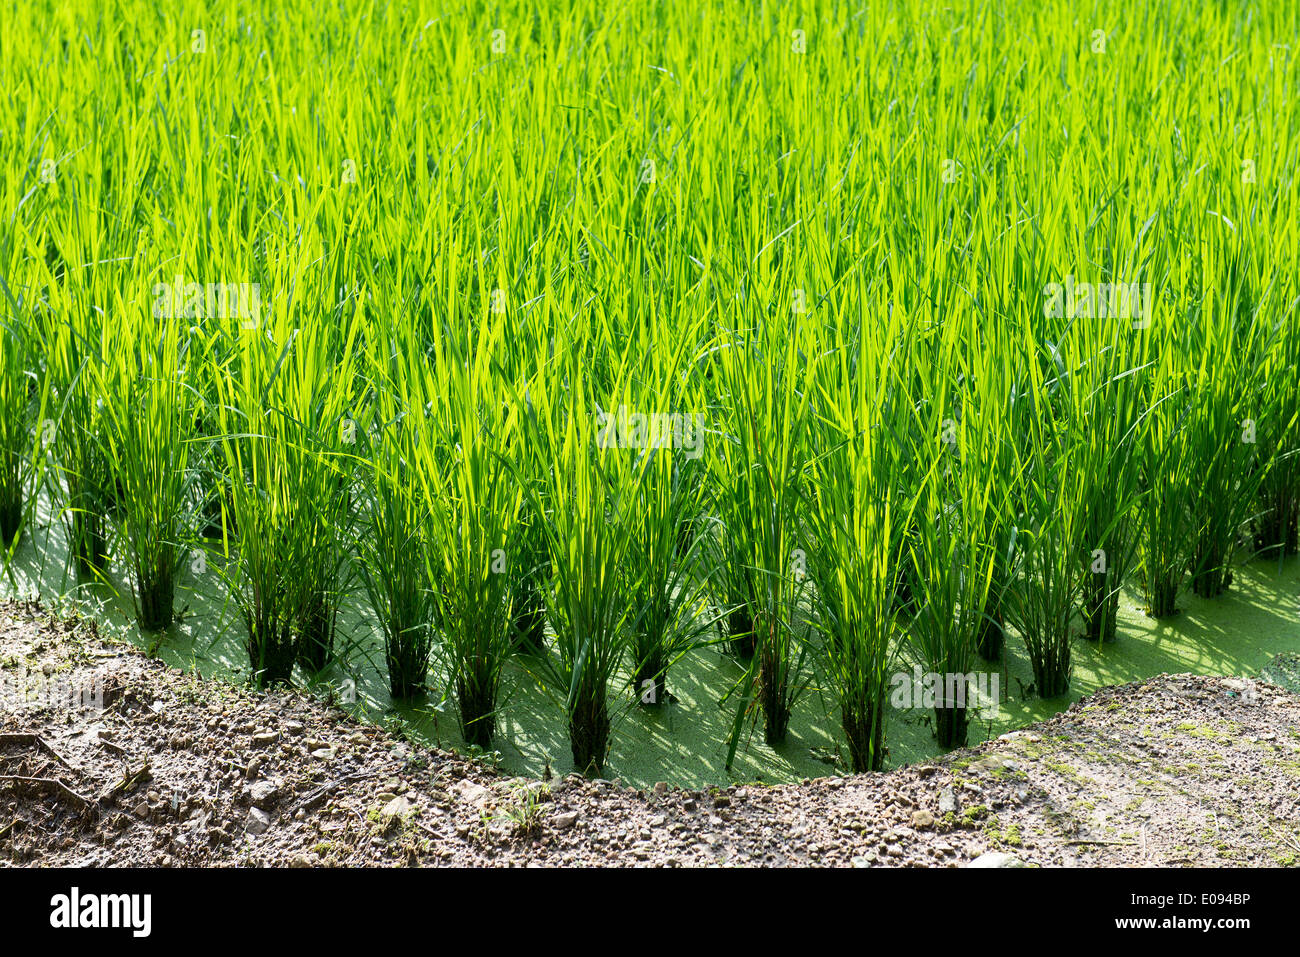 Green rice field background with young rice plants - Stock Image